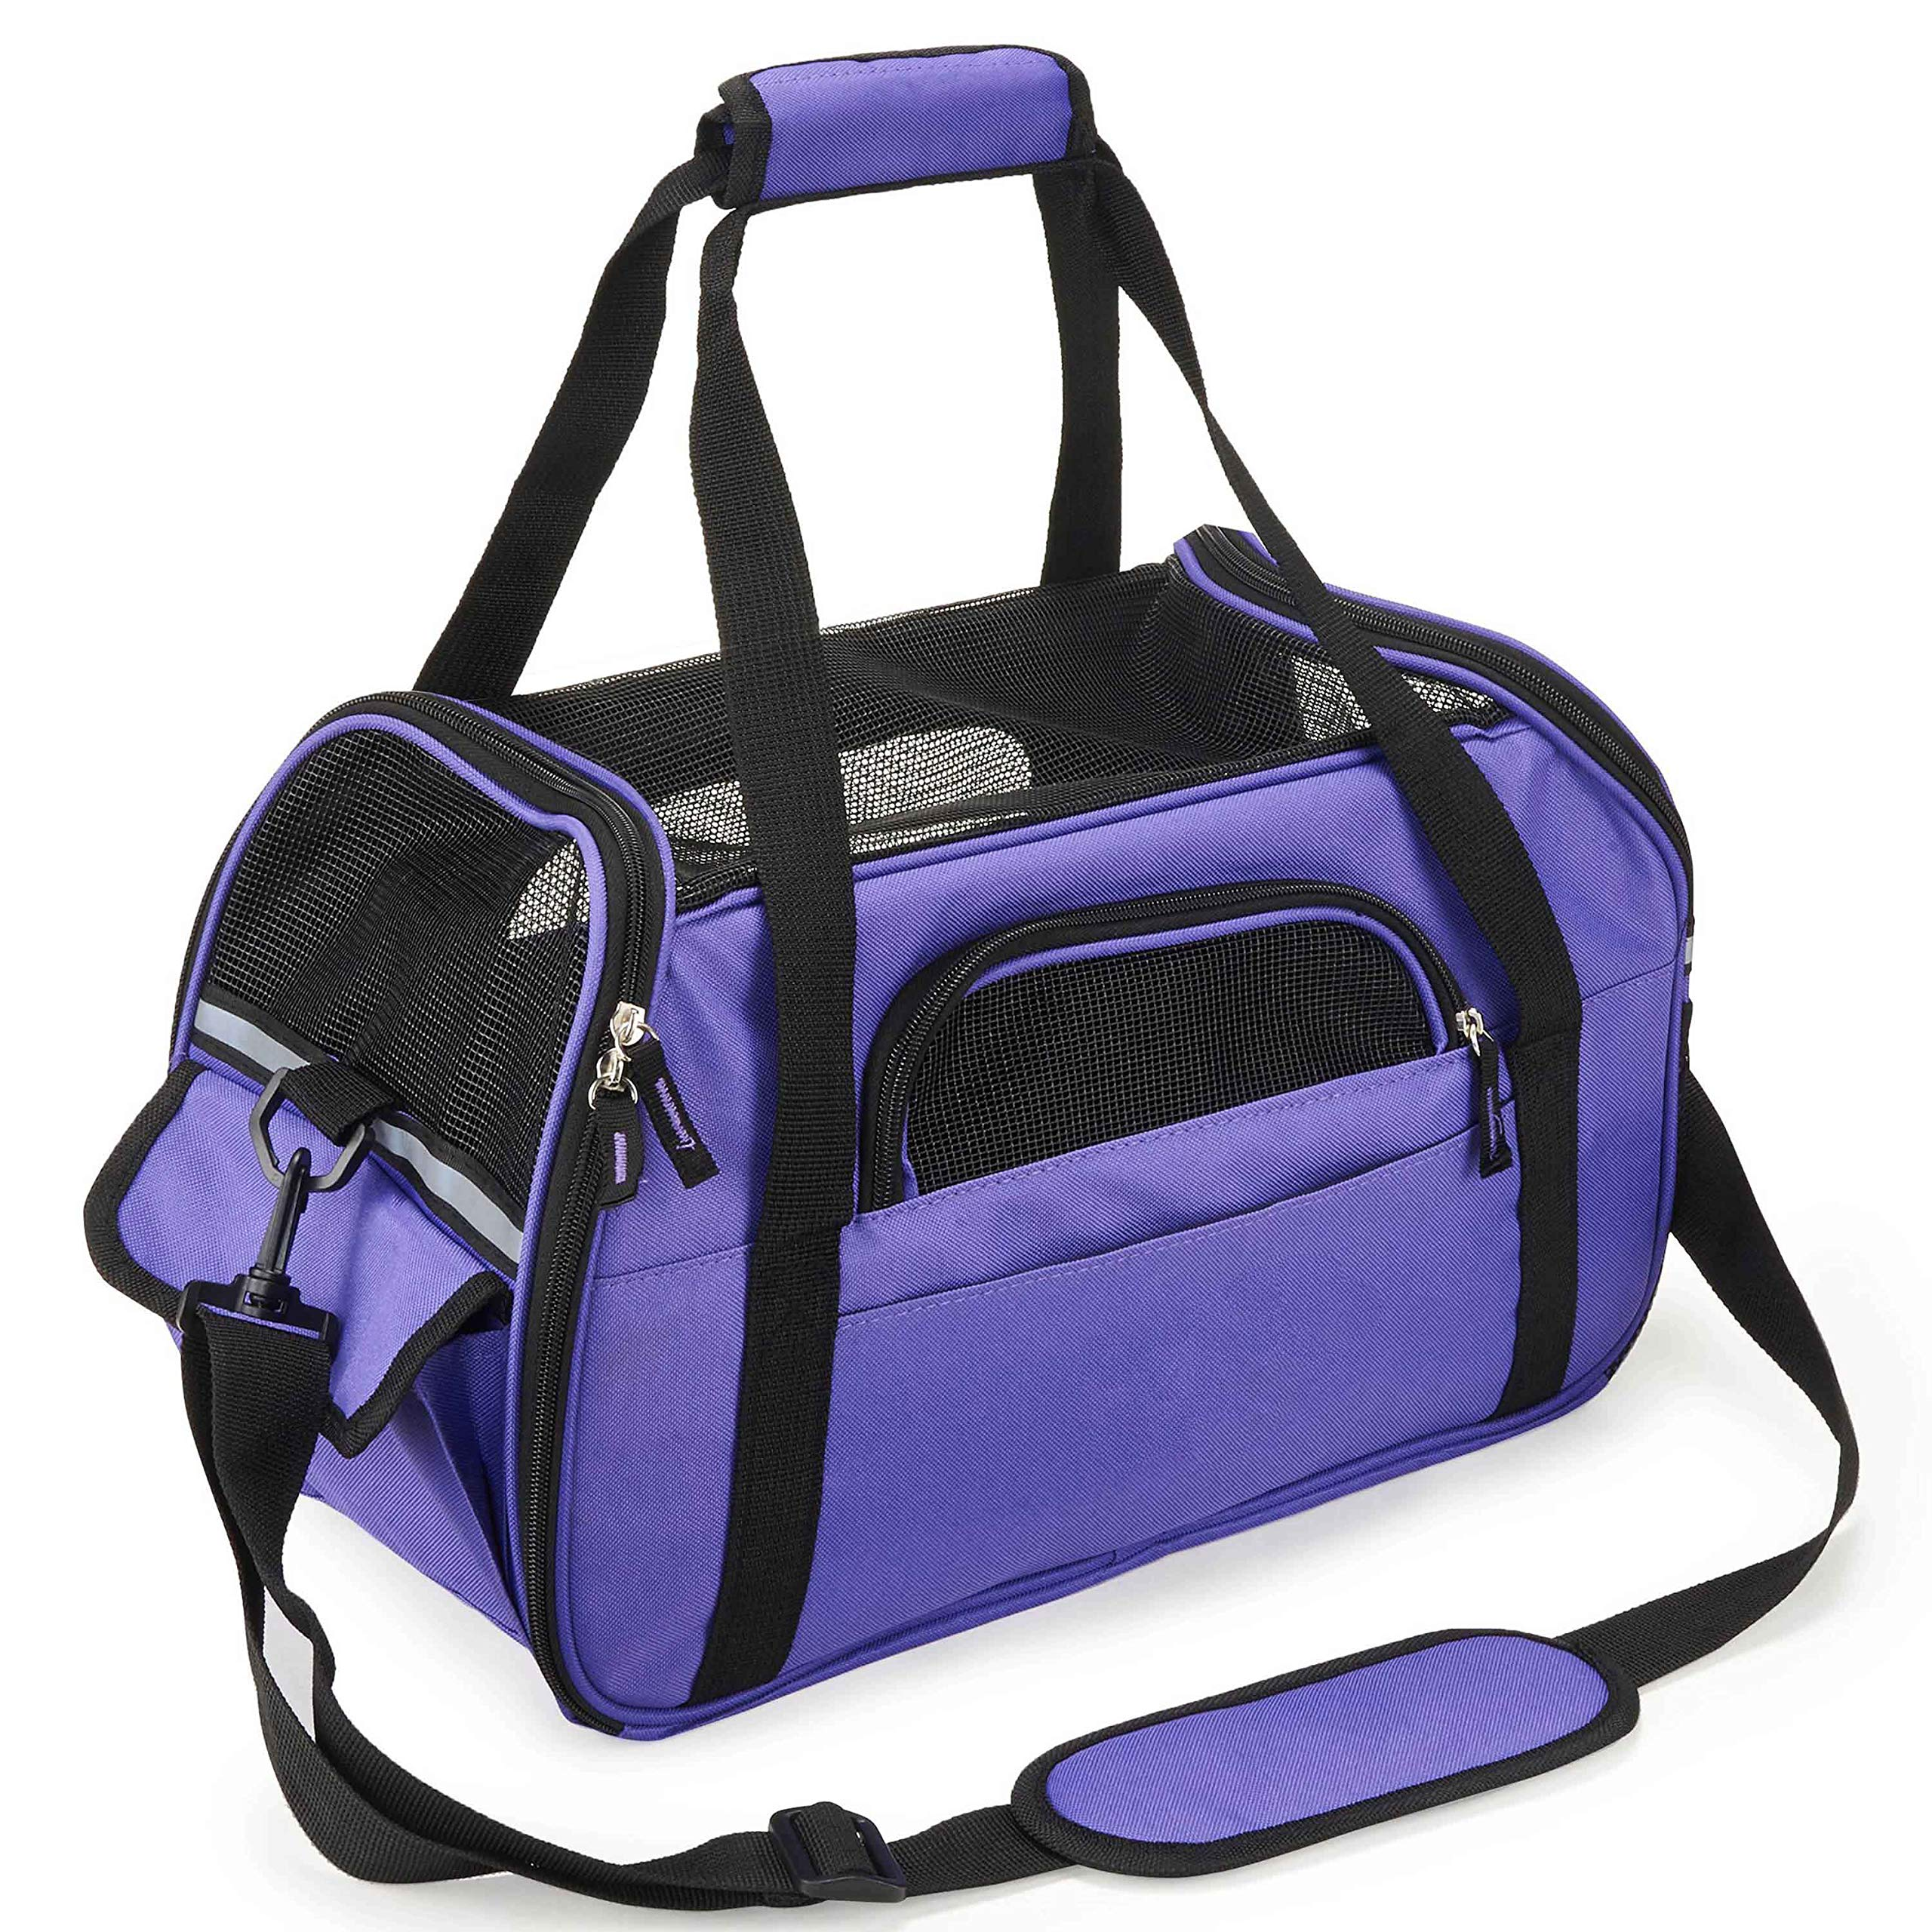 Soft-Sided Pet Carrier for Dogs Cats Travel Bag Tote Airline Approved Under Seat